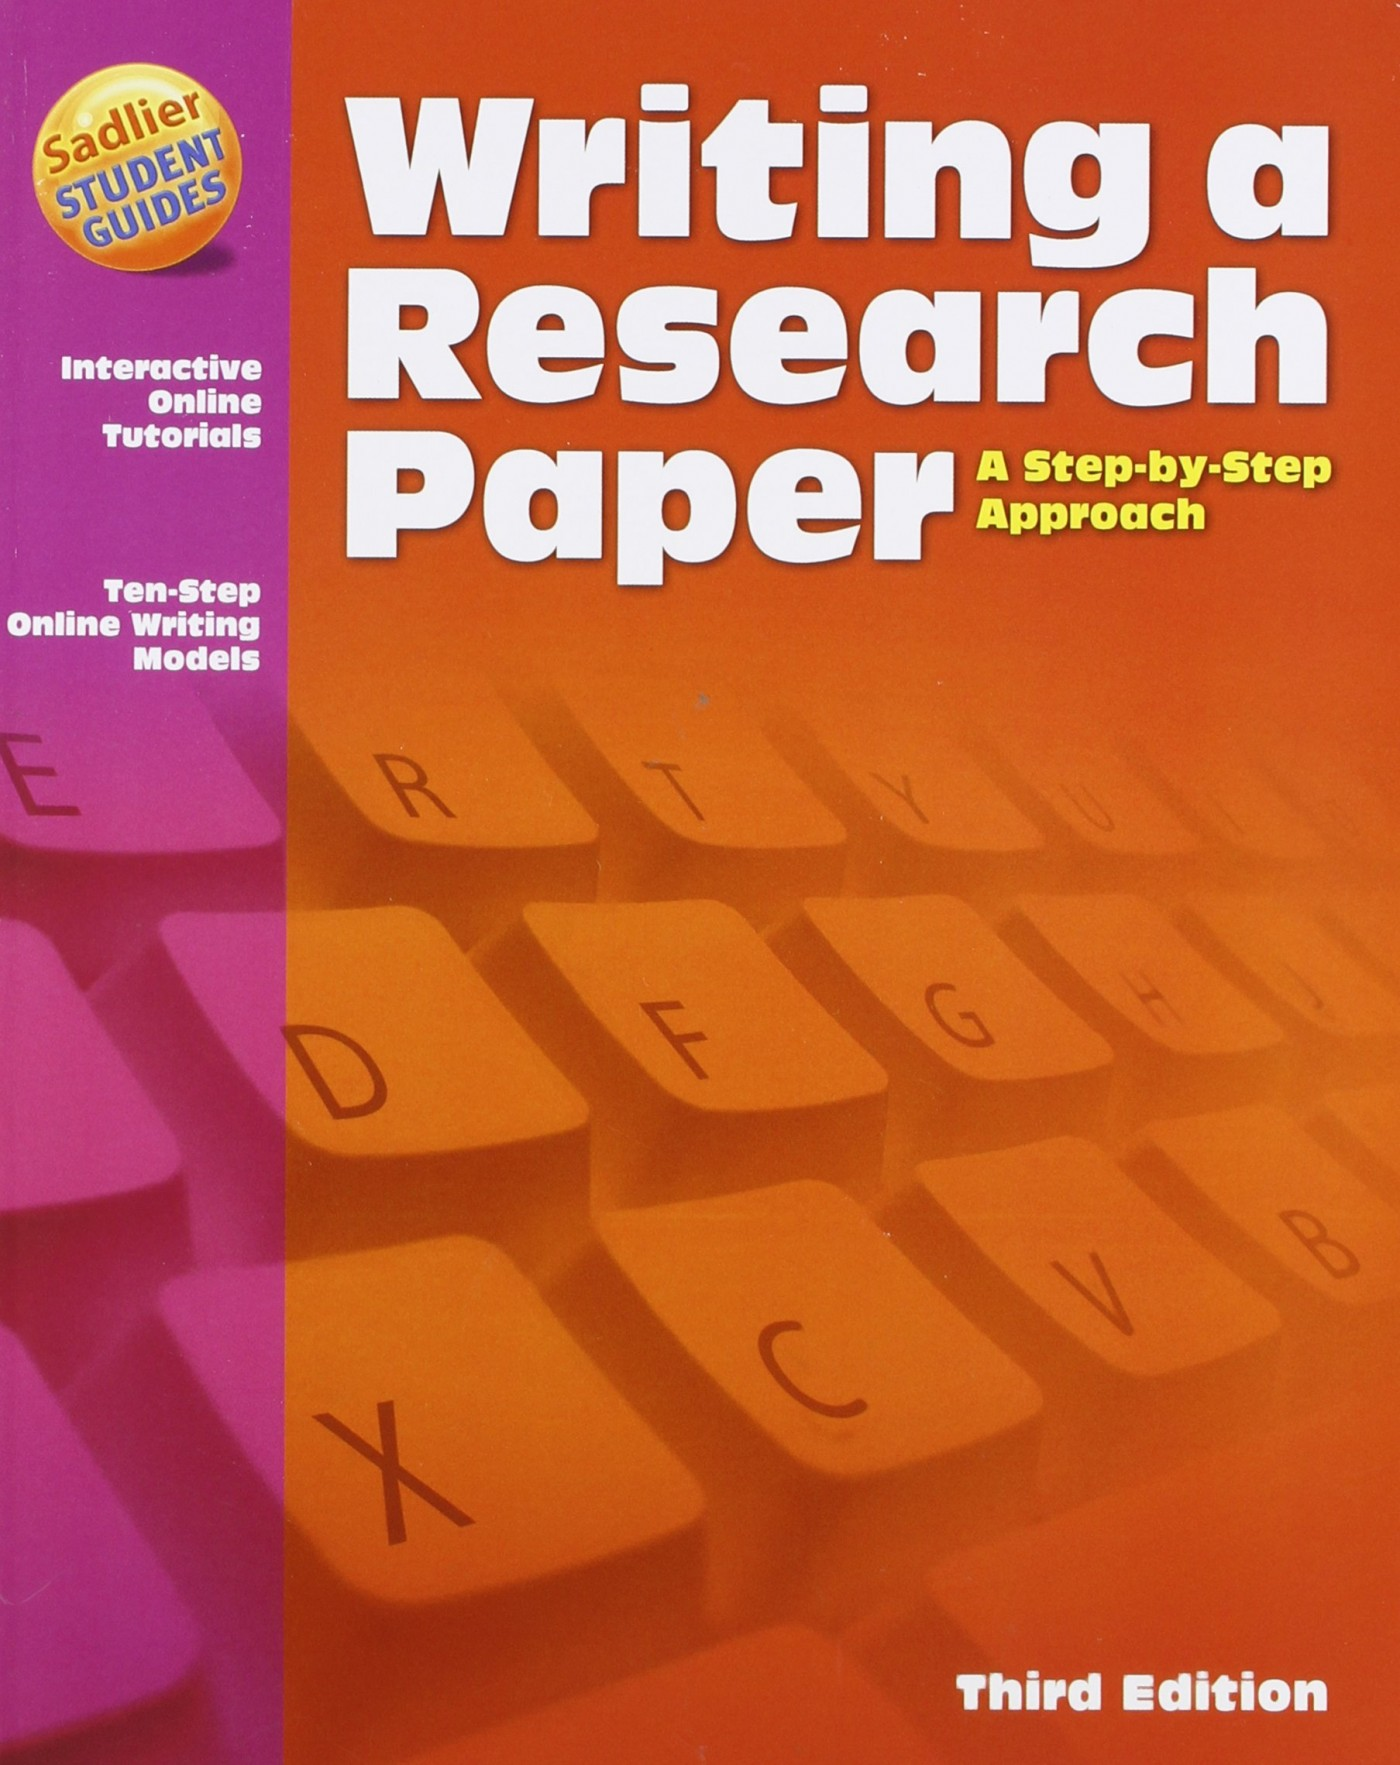 019 Research Paper Writing Papers Unique A Complete Guide Pdf Download James D Lester 1400